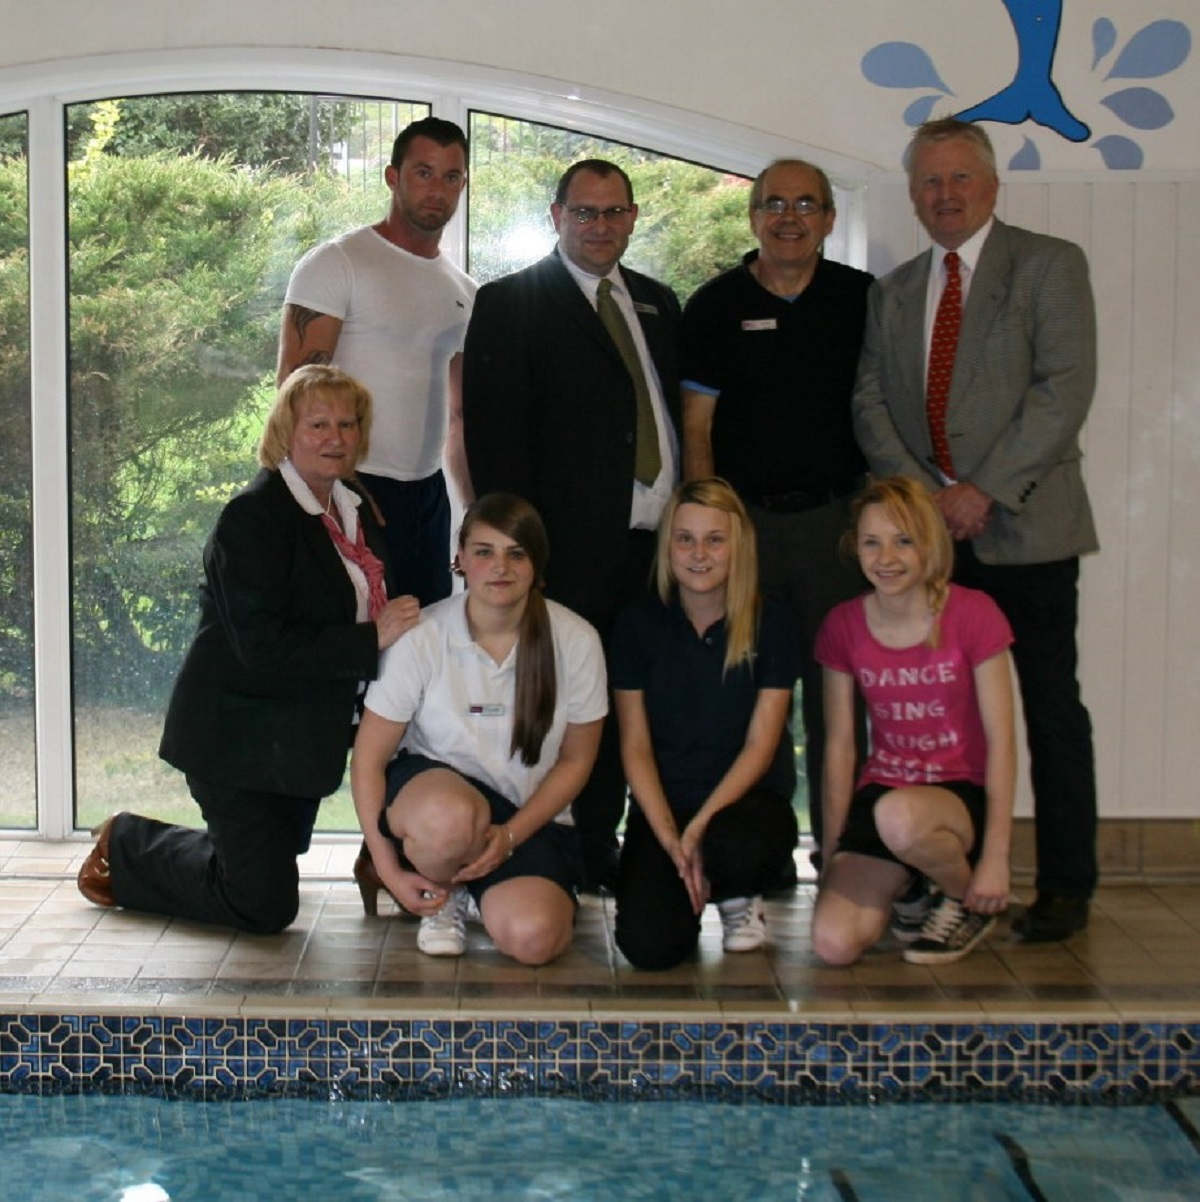 DIVING IN: The Feel Good Health Club  team get set for the Swimathon.